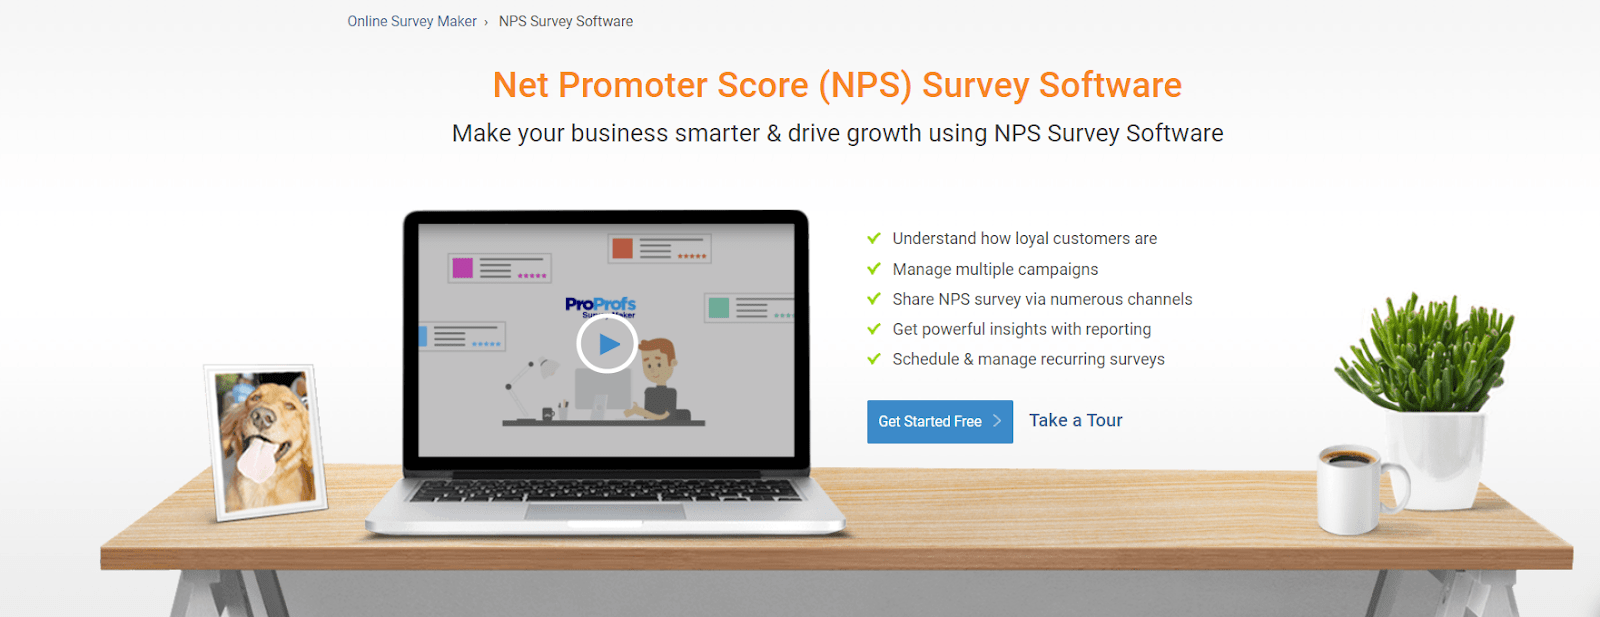 ProProfs-NPS Software